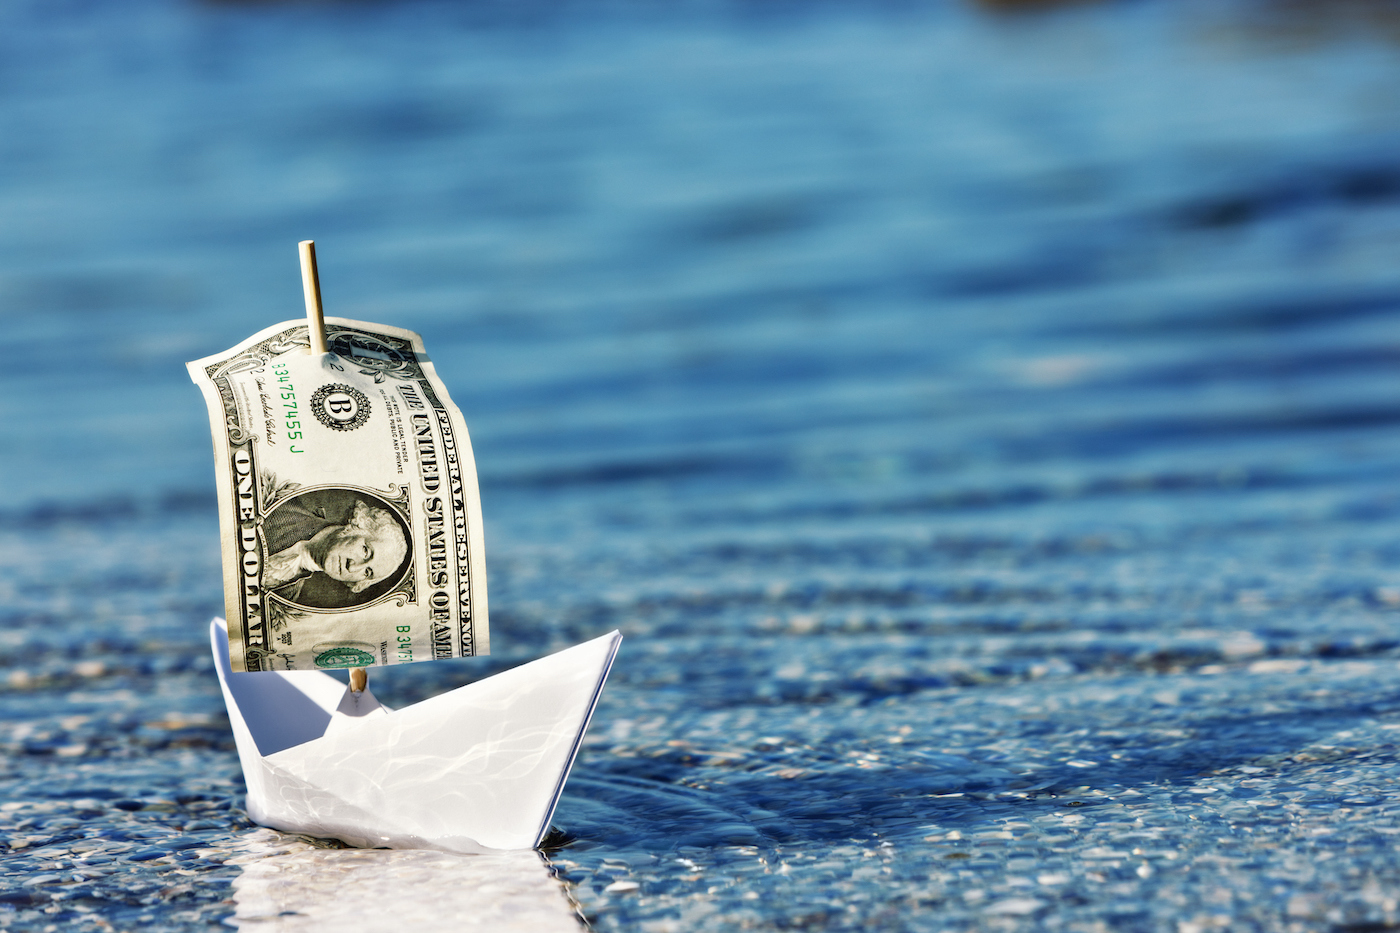 a paper boat with a dollar bill for a sail